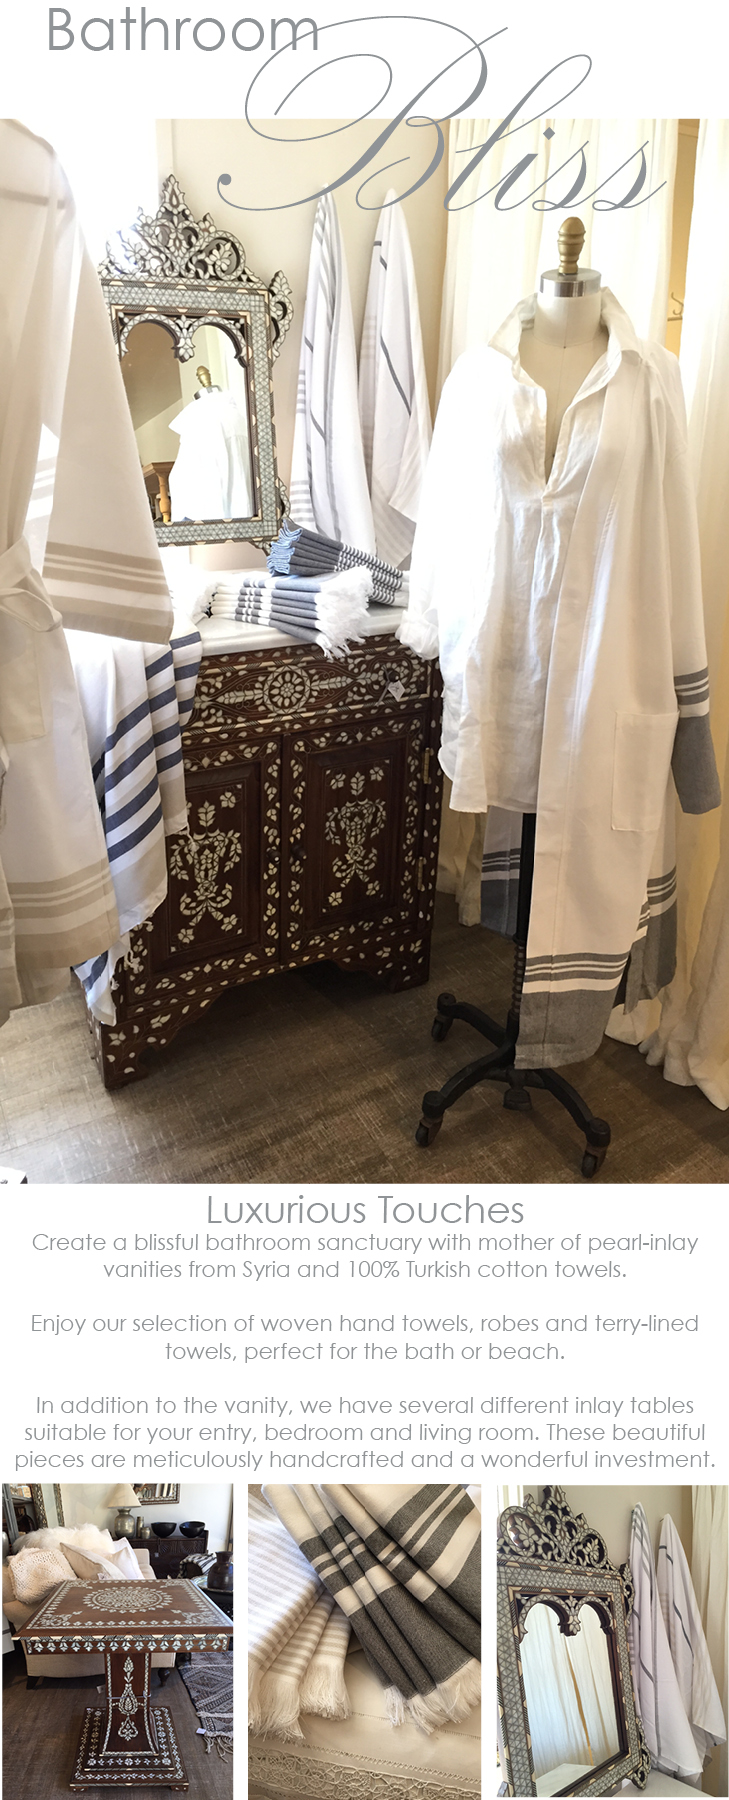 turkish cotton towels at maison k